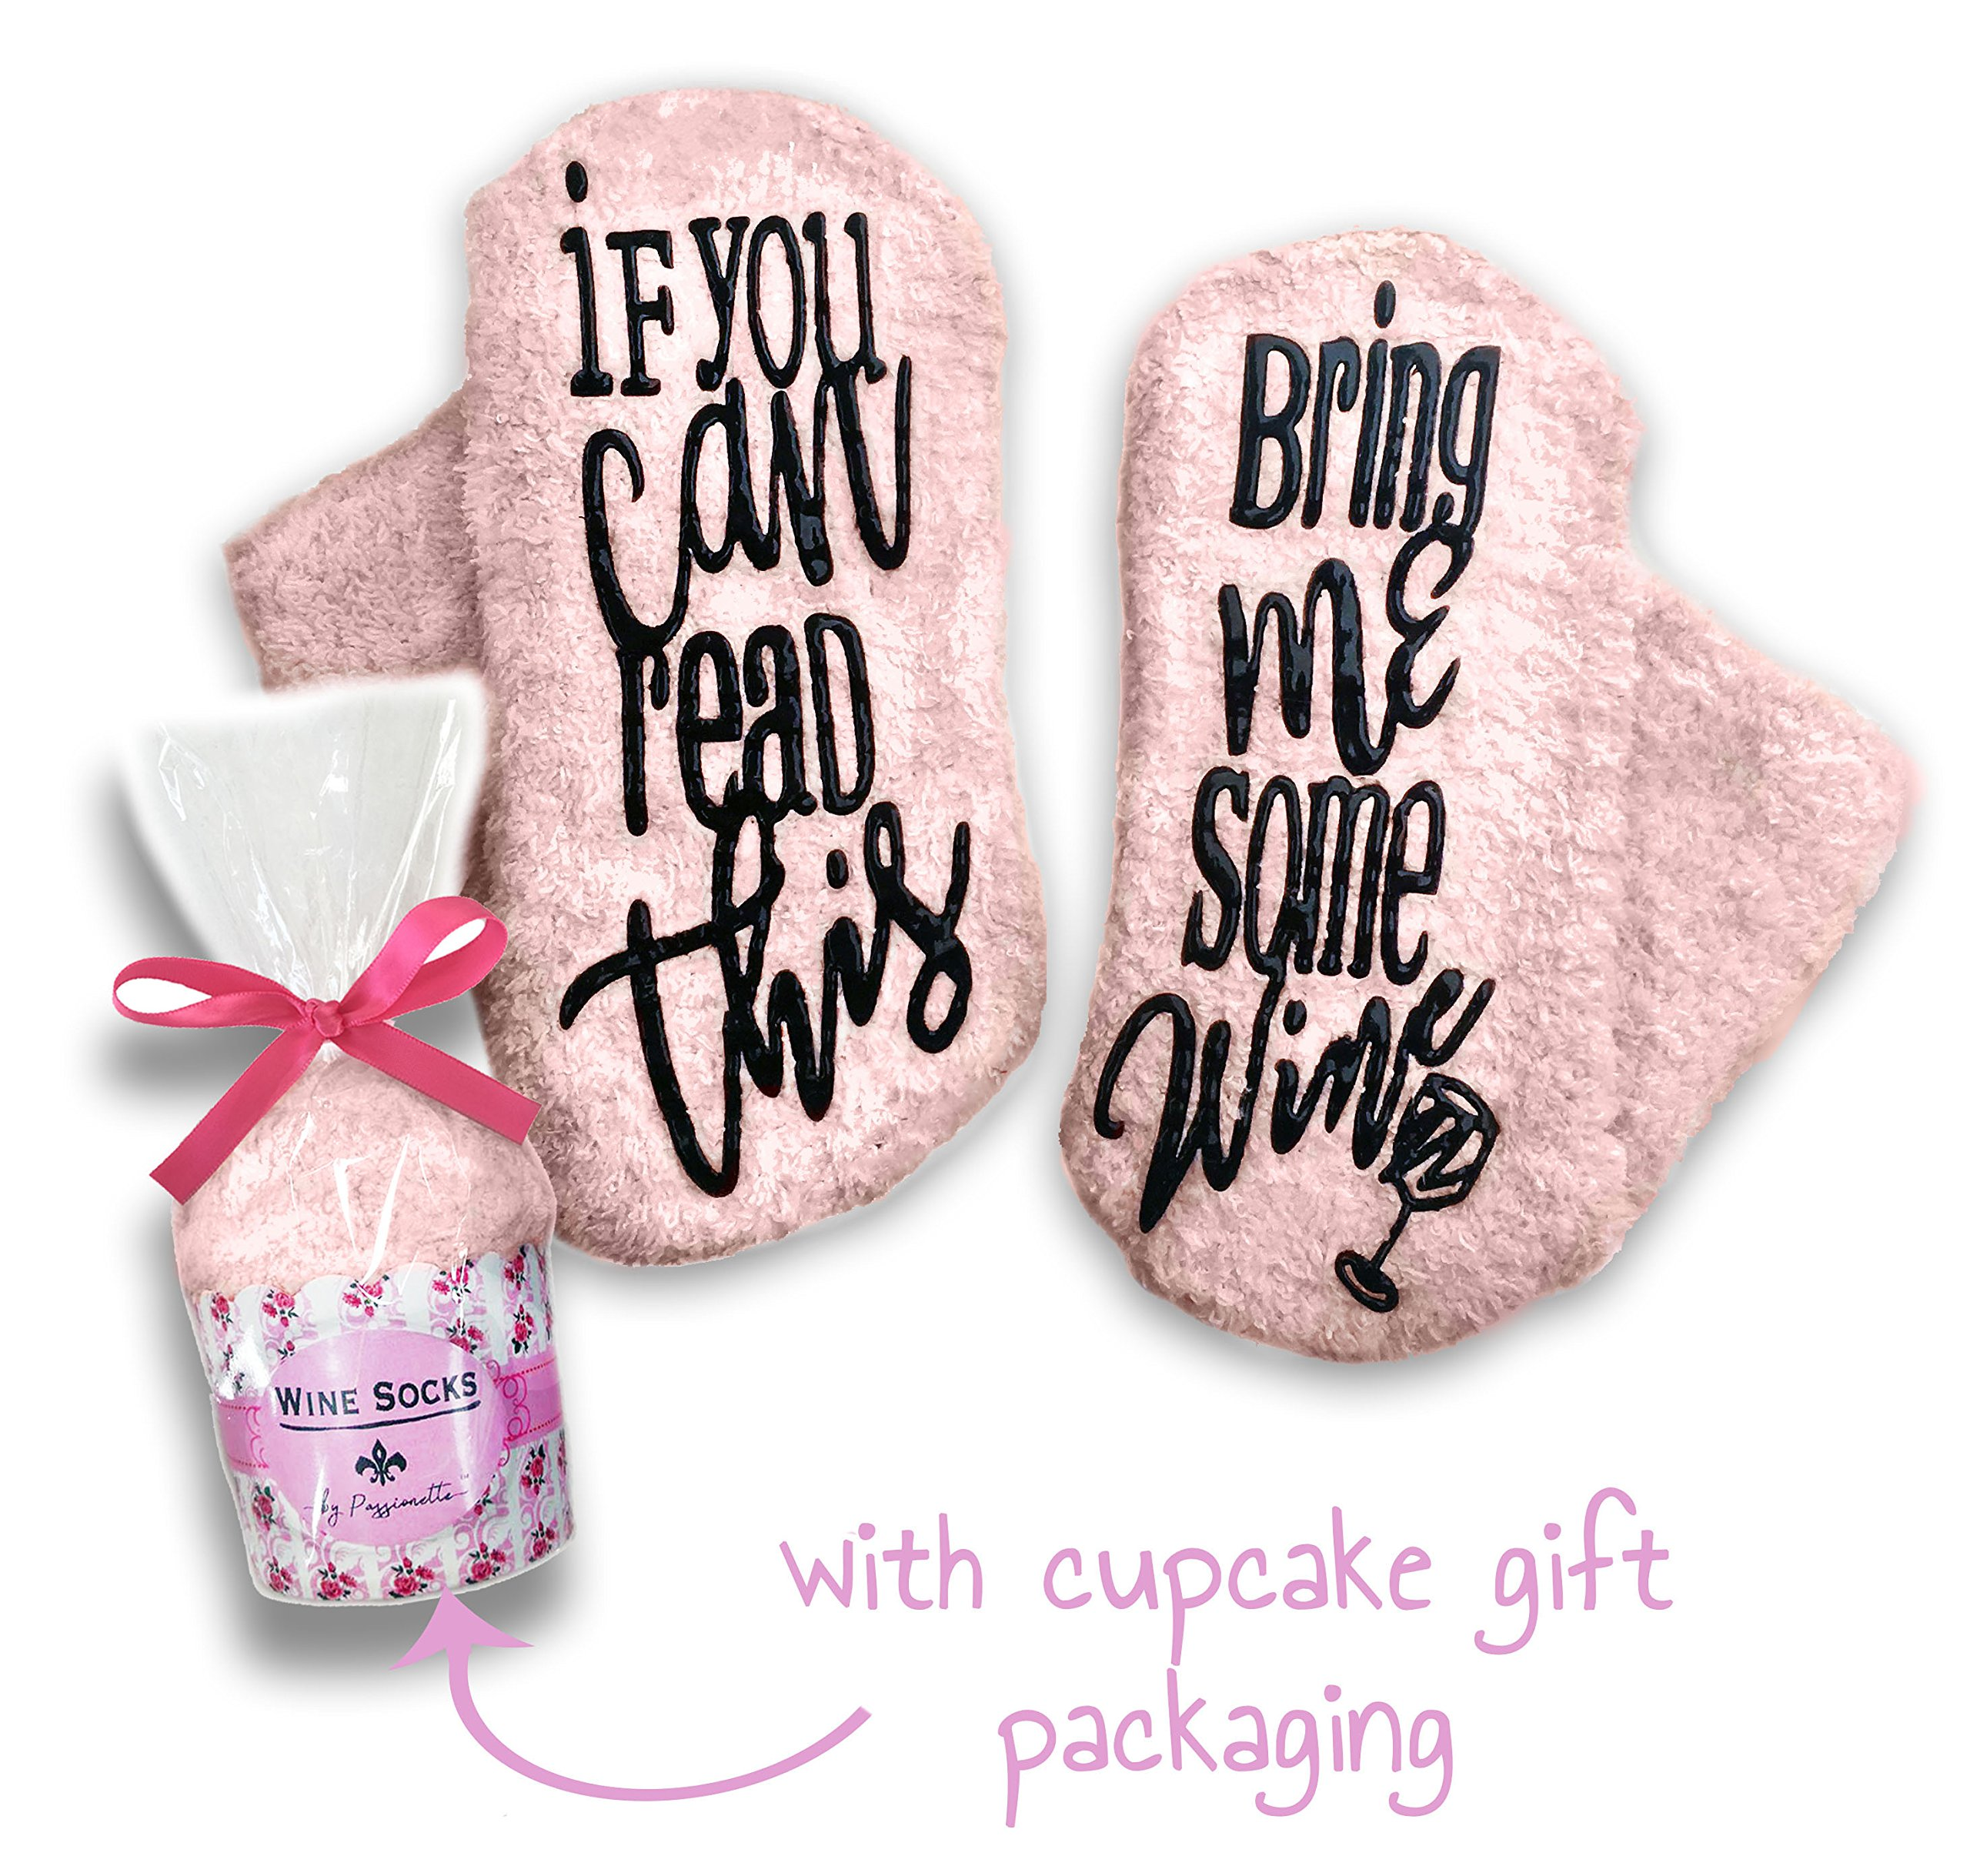 Passionette Fuzzy Wine Socks: If You Can Read This Bring Me Some Wine Novelty Socks - Funny Gift Idea for Her - Anniversary, 21st Birthday with Cupcake Gift Packaging (Baby Blush) by Passionette